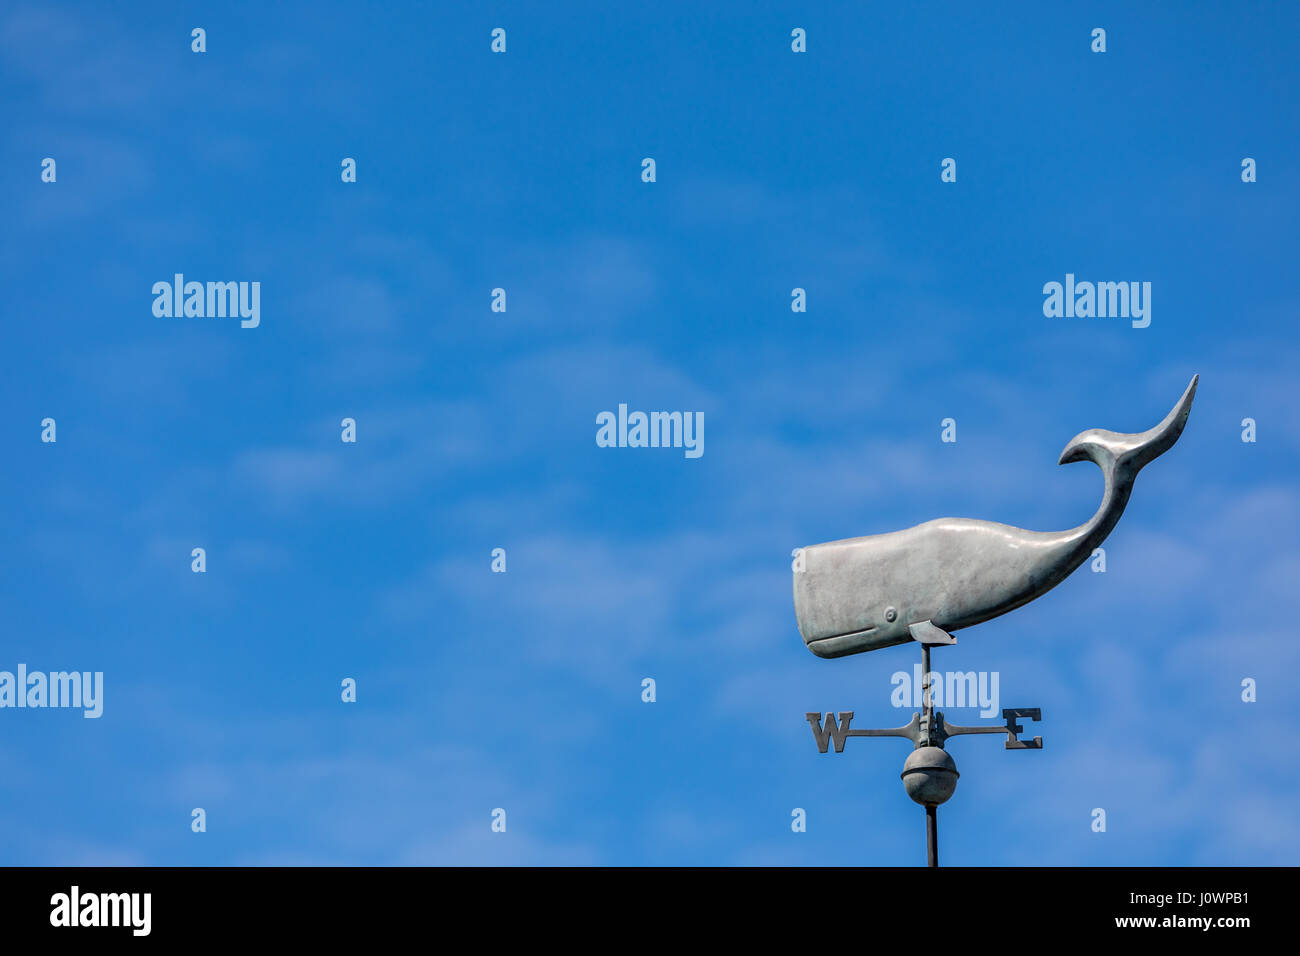 Metal whale weather vane in a blue sky - Stock Image